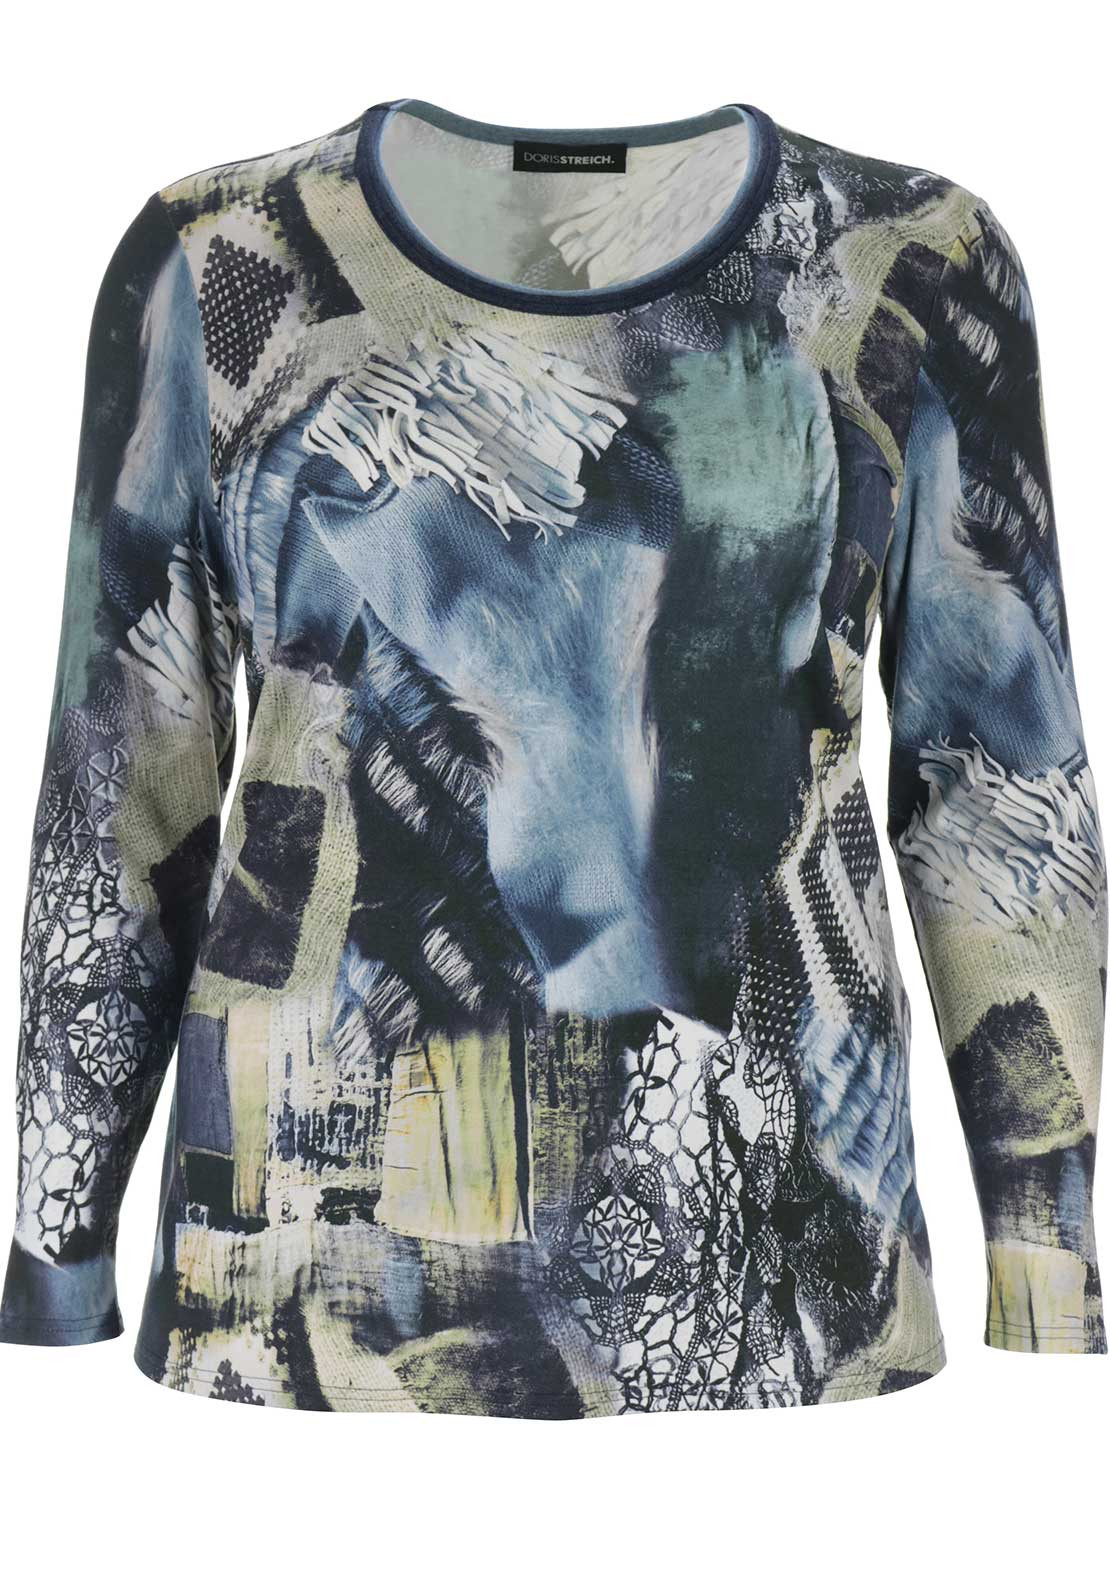 Doris Streich Printed Long Sleeve Top, Blue Multi